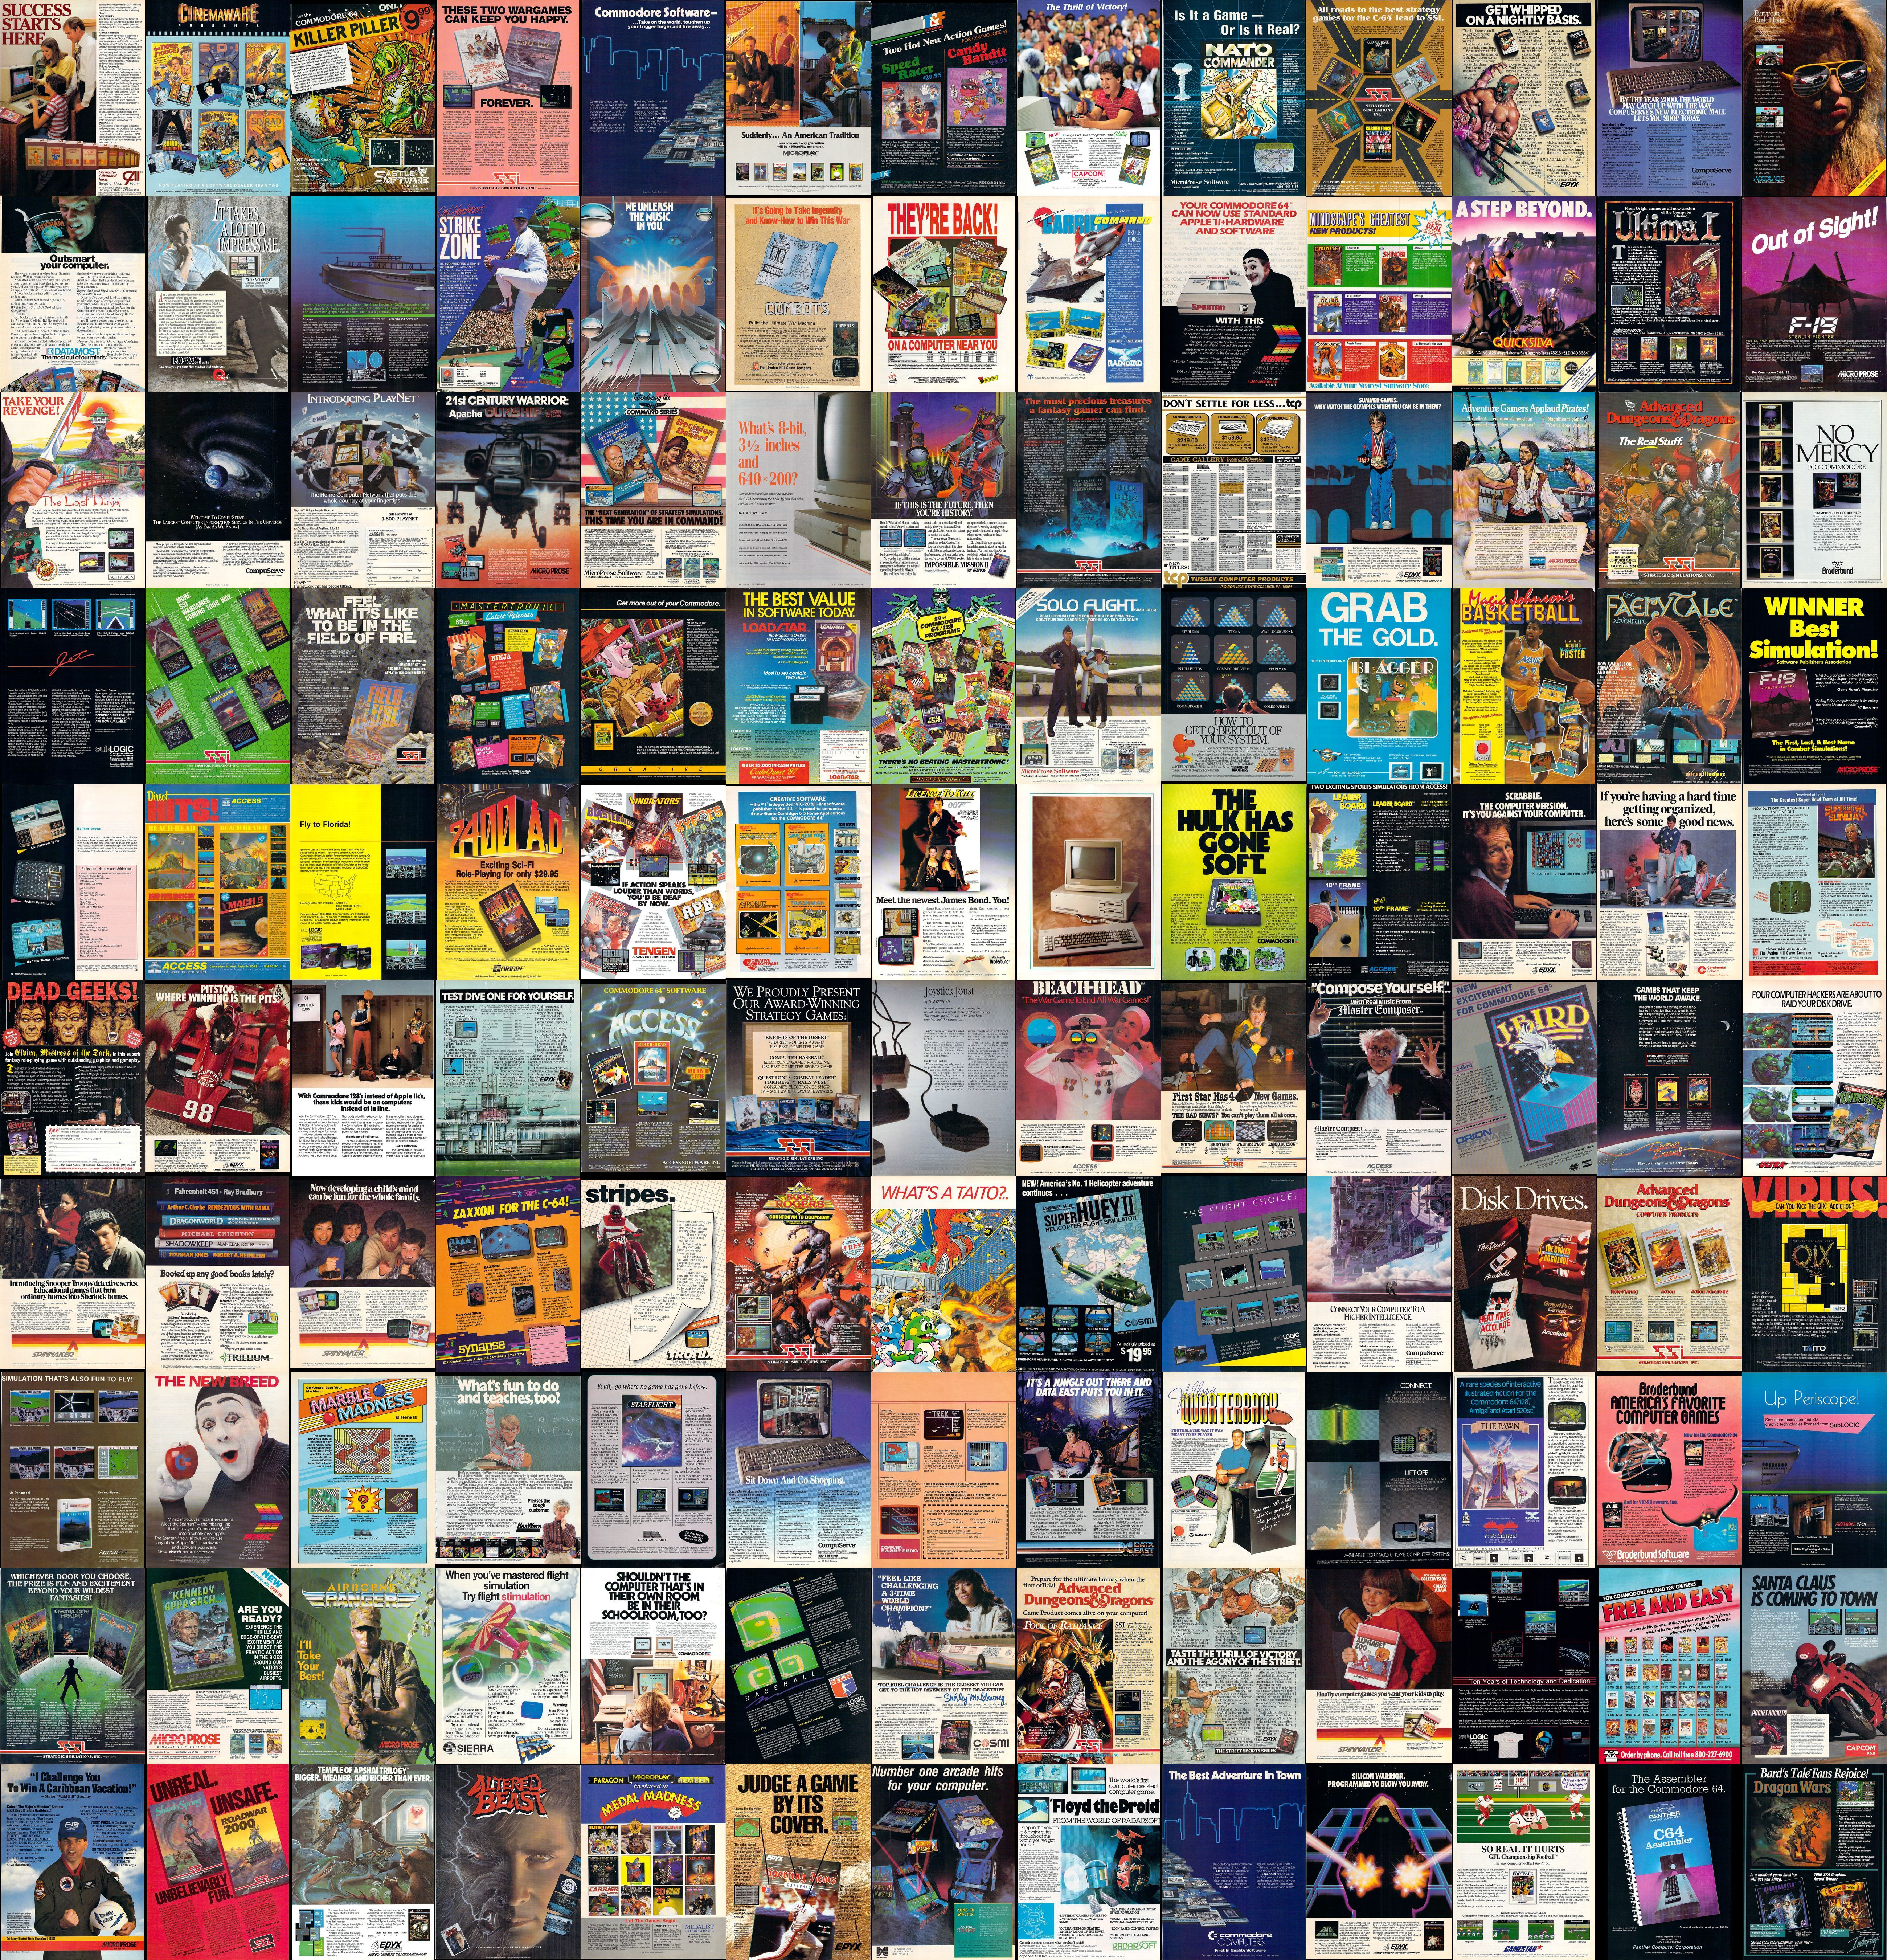 commodore 64 game ads wallpaper image | gaming | Video game